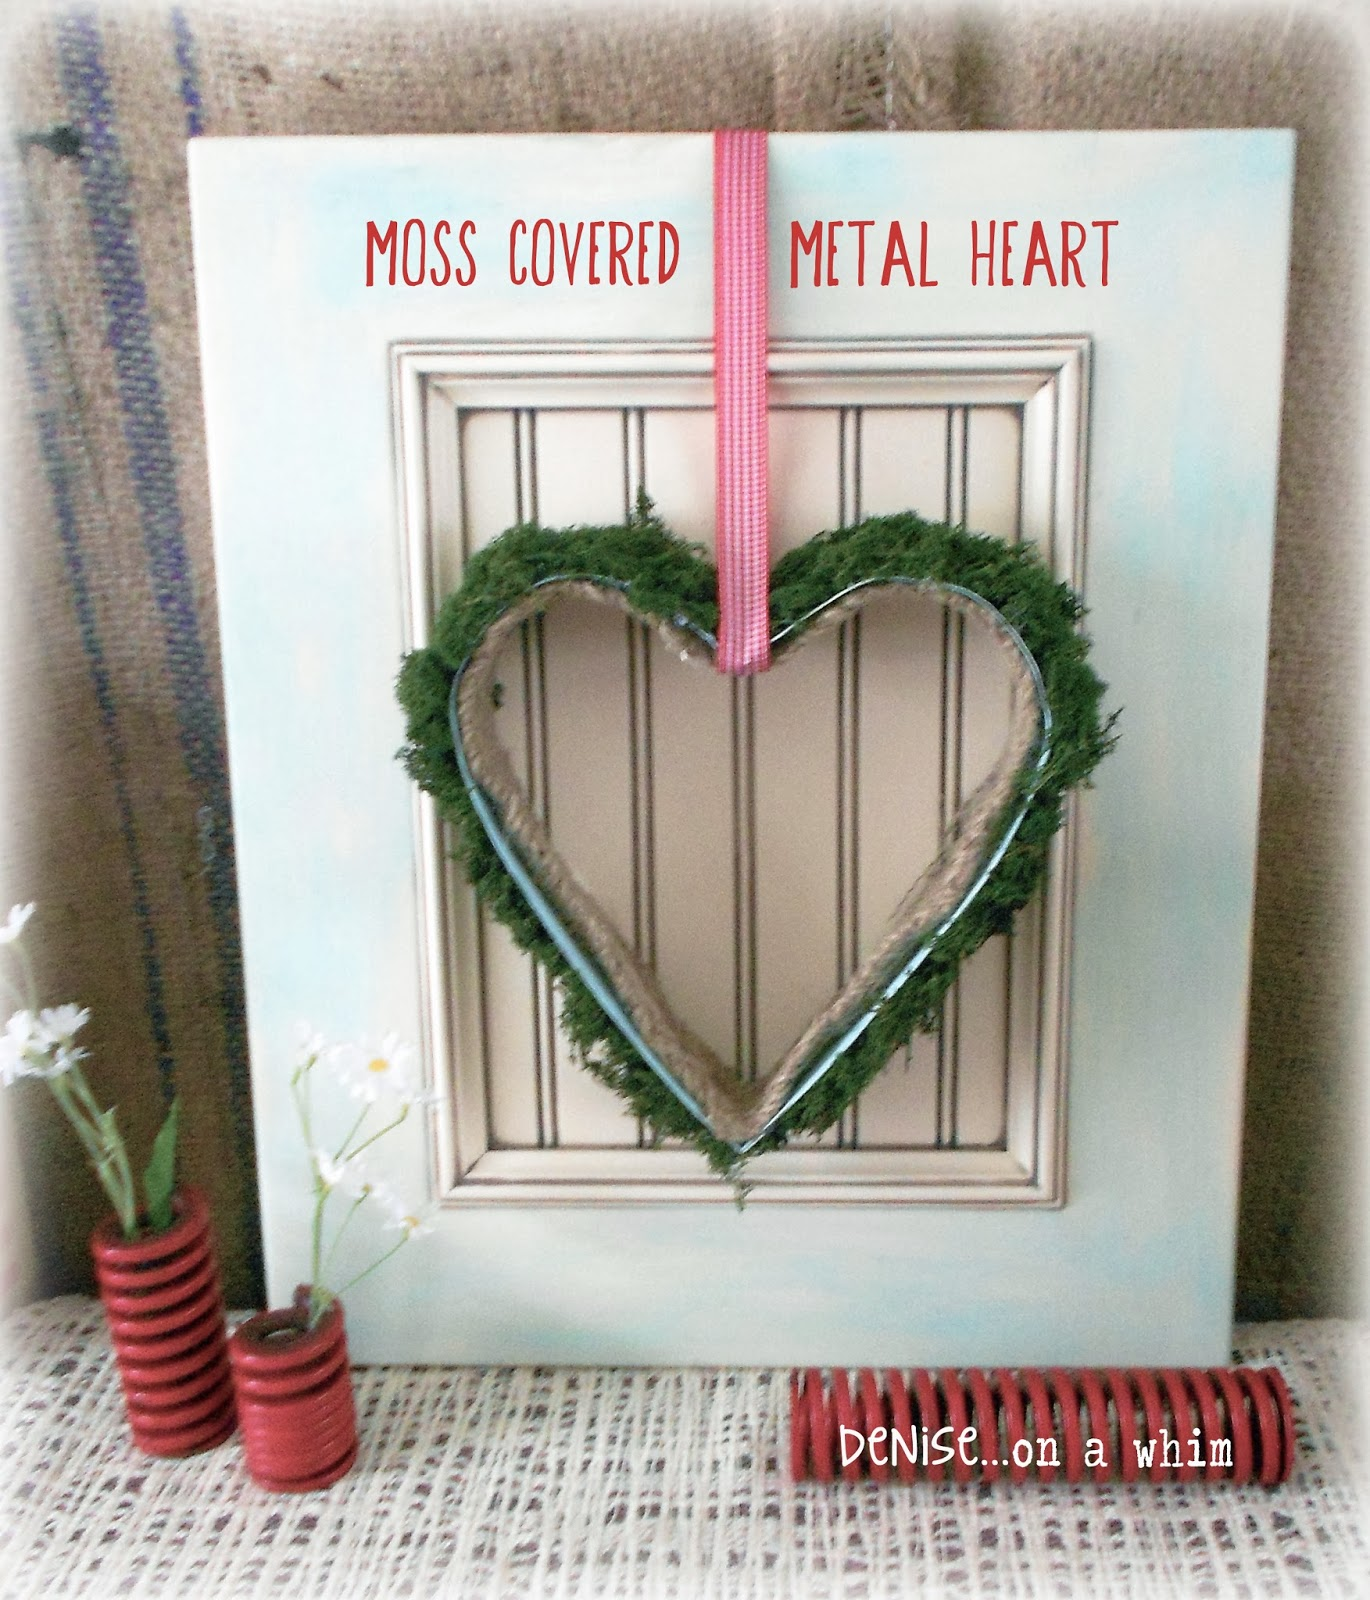 Metal Baking Form Heart Wall Decor via http://deniseonawhim.blogspot.com